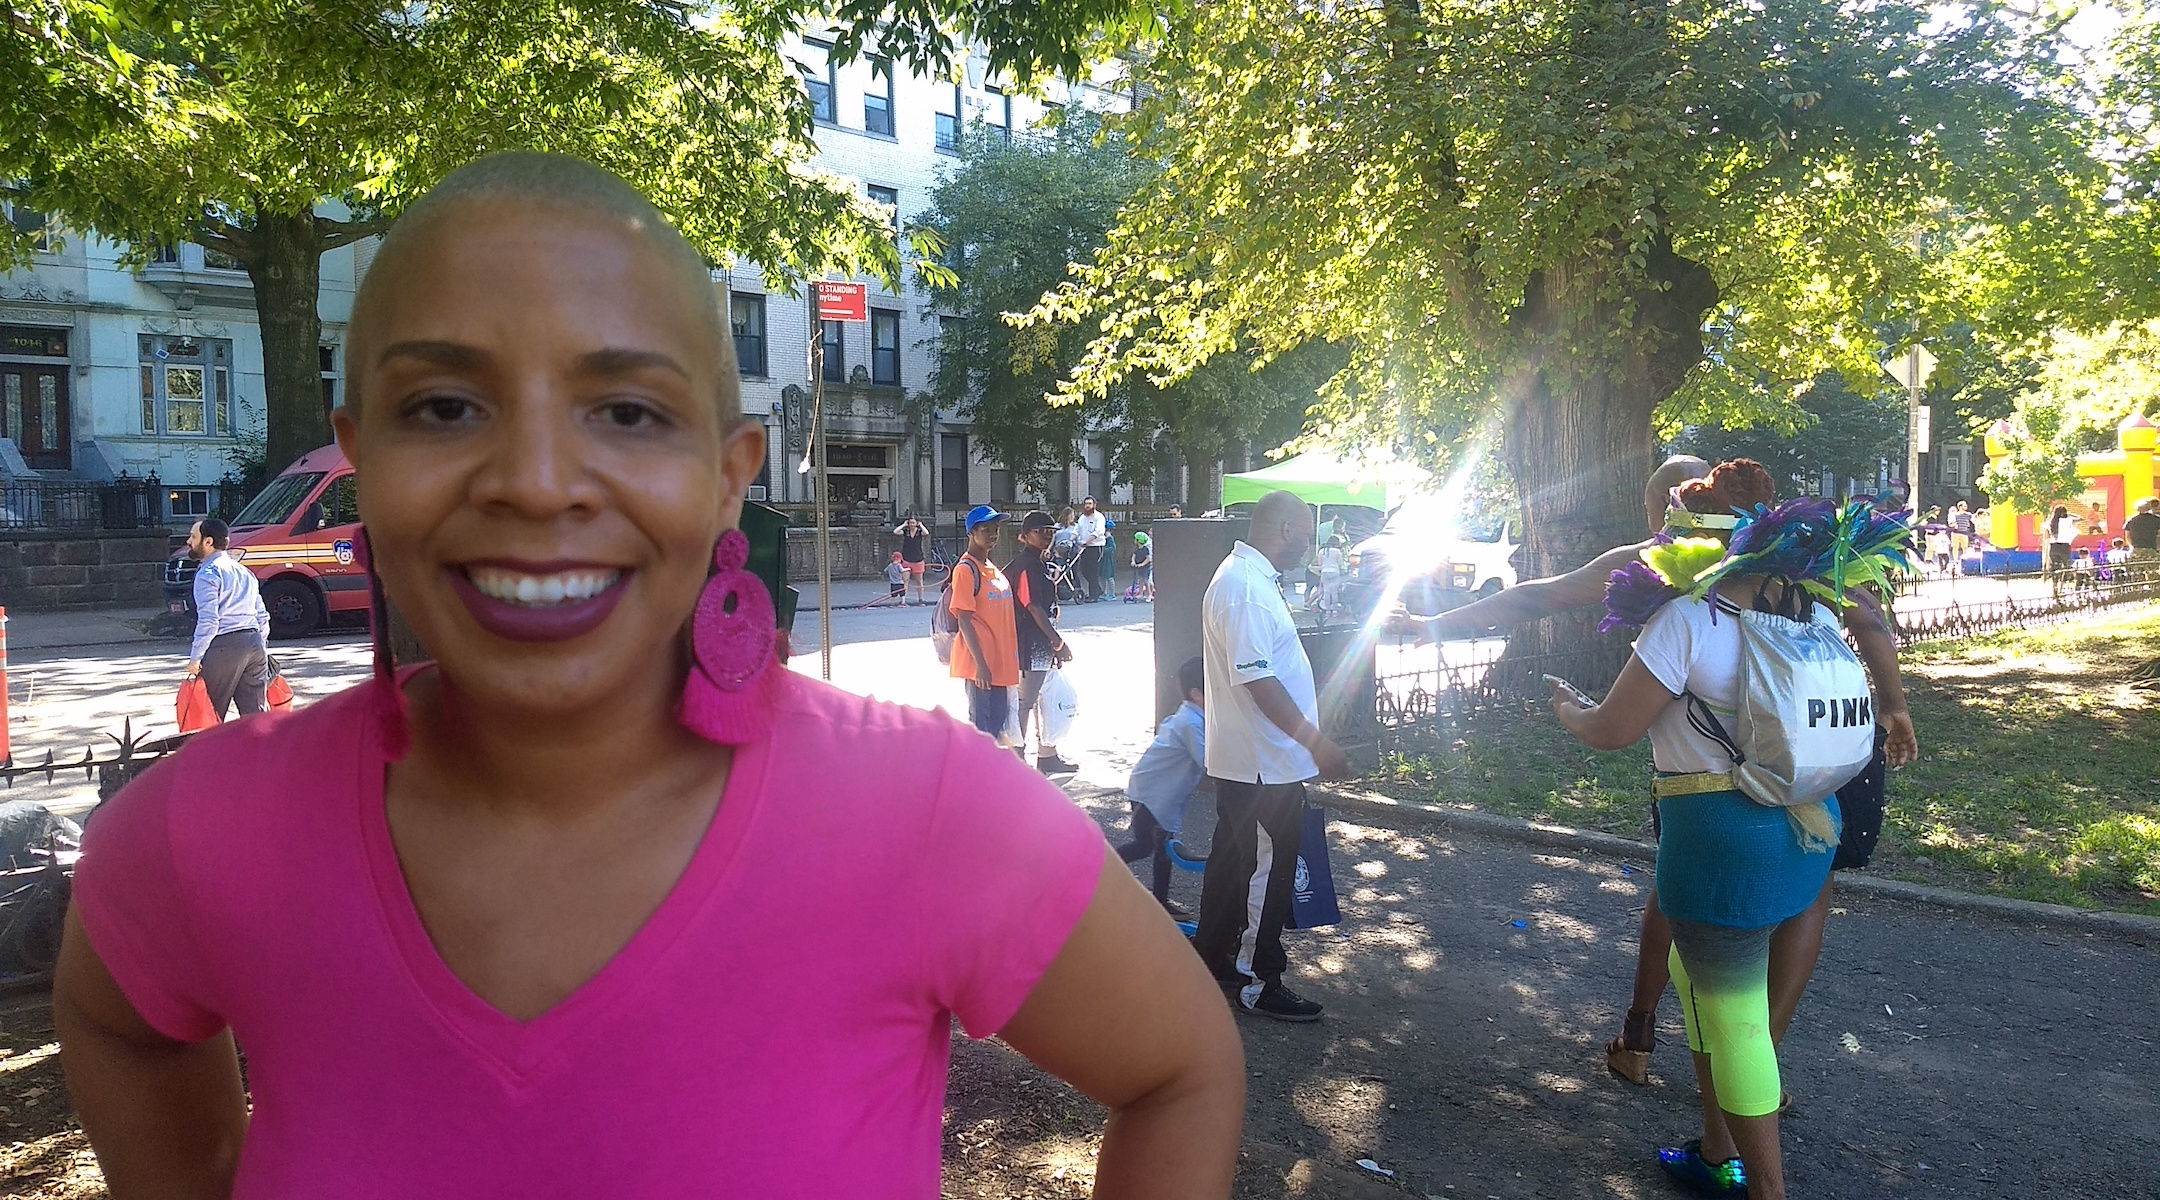 Laurie Cumbo, the New York City Council majority leader who represents Crown Heights, said the festival could lead to more interaction between African-Americans and Jews. (Ben Sales)